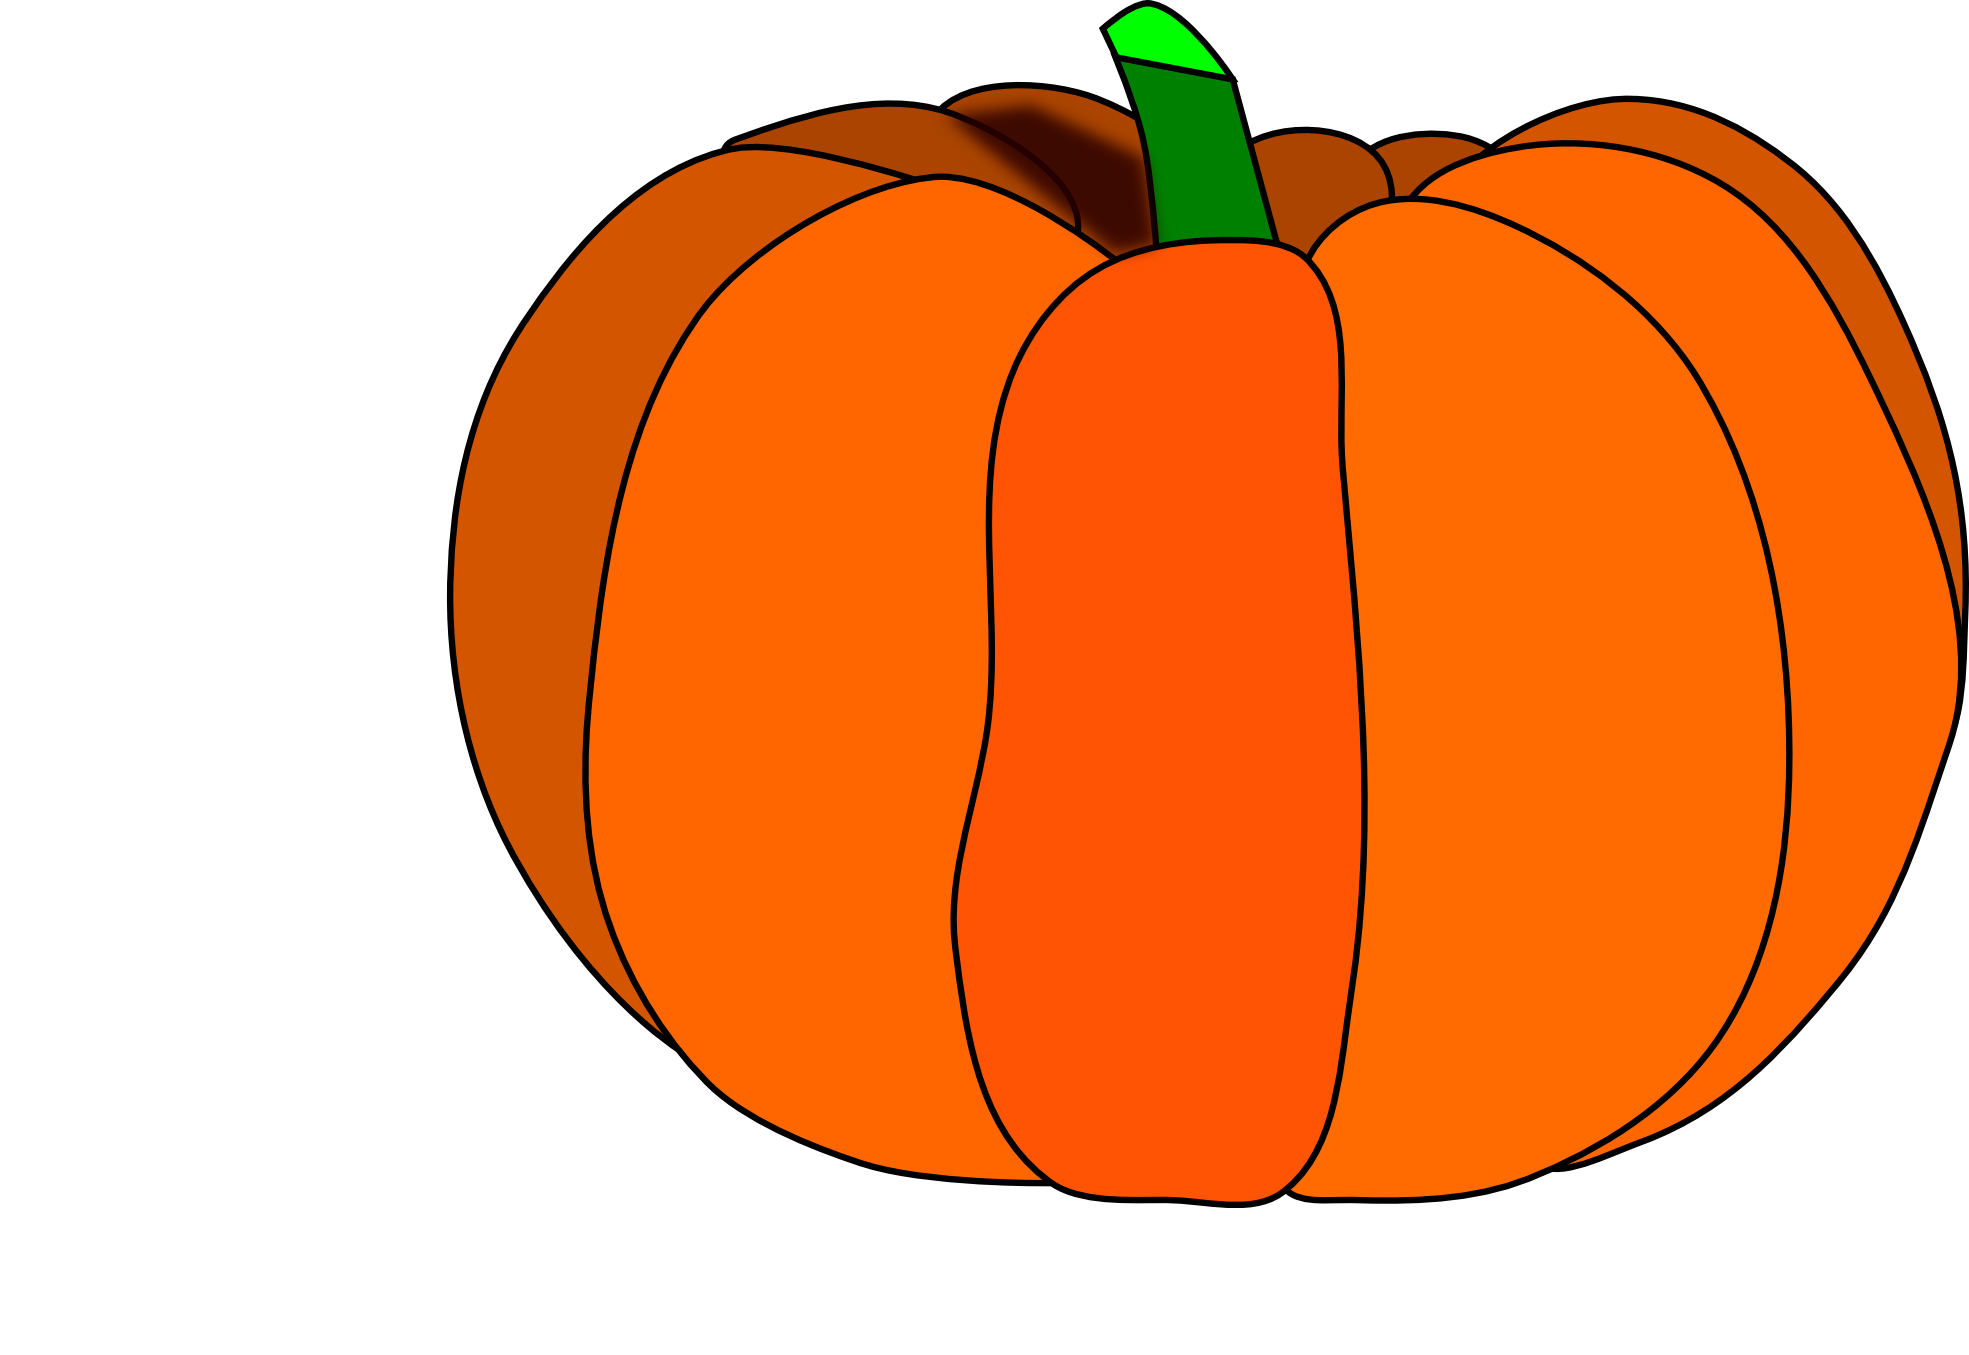 Free pumpkin patch clipart svg transparent clipartist.net » Clip Art » Potiron Pumpkin openclipart.org 2013 ... svg transparent